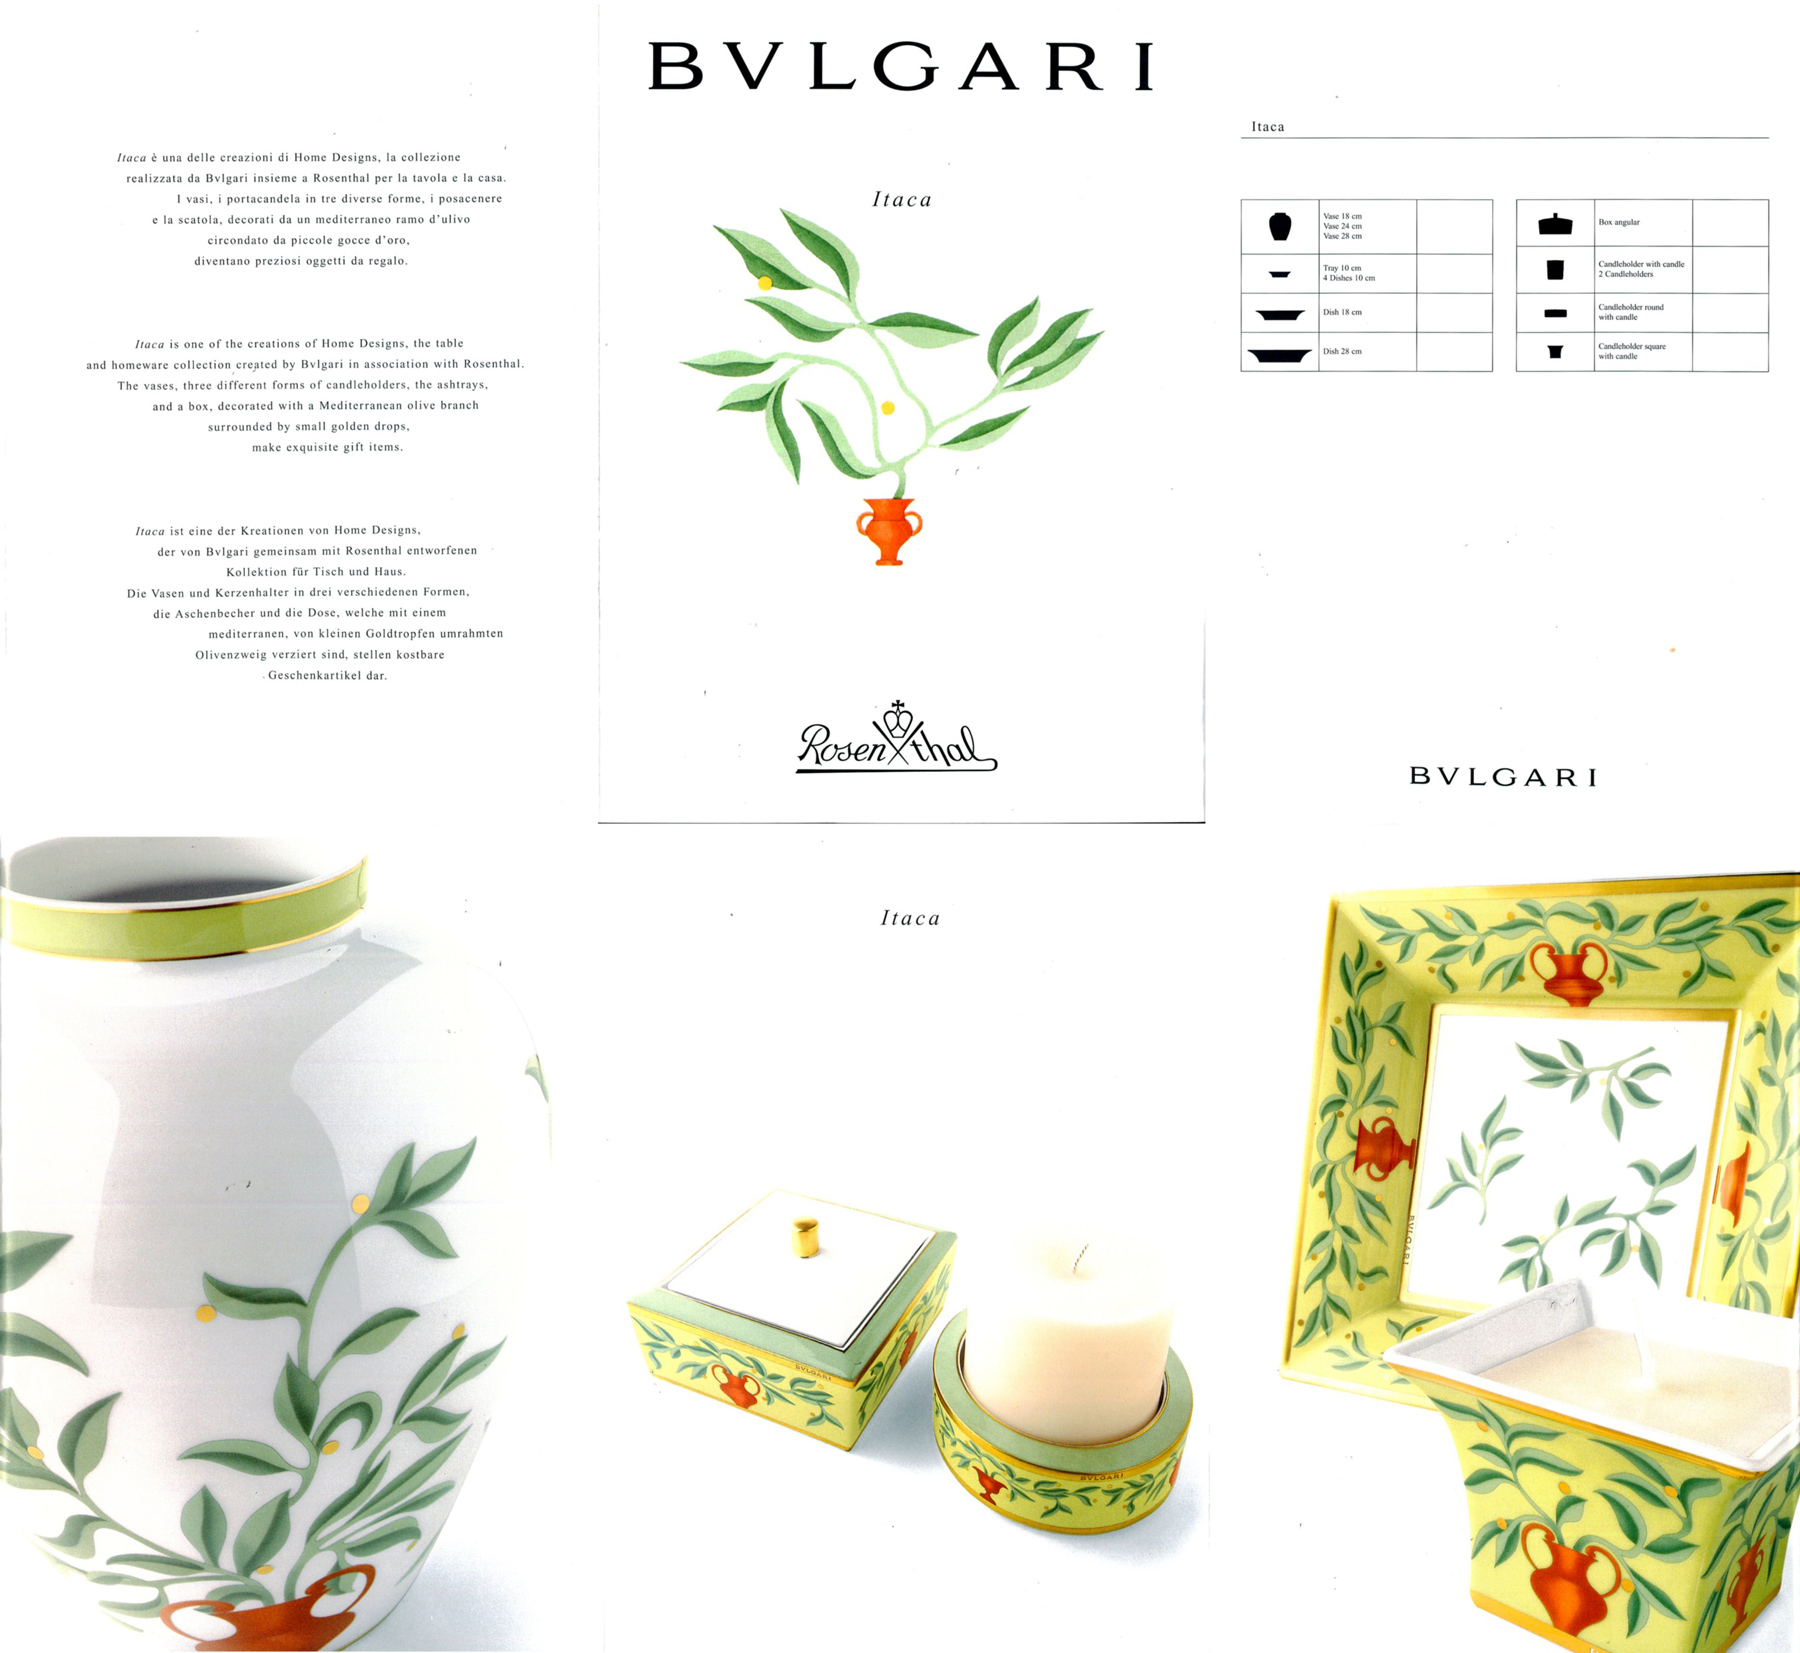 Bulgari Bvlgari Itaca Vase Rosenthal Fine China Housewares Home Porcelain Catalog